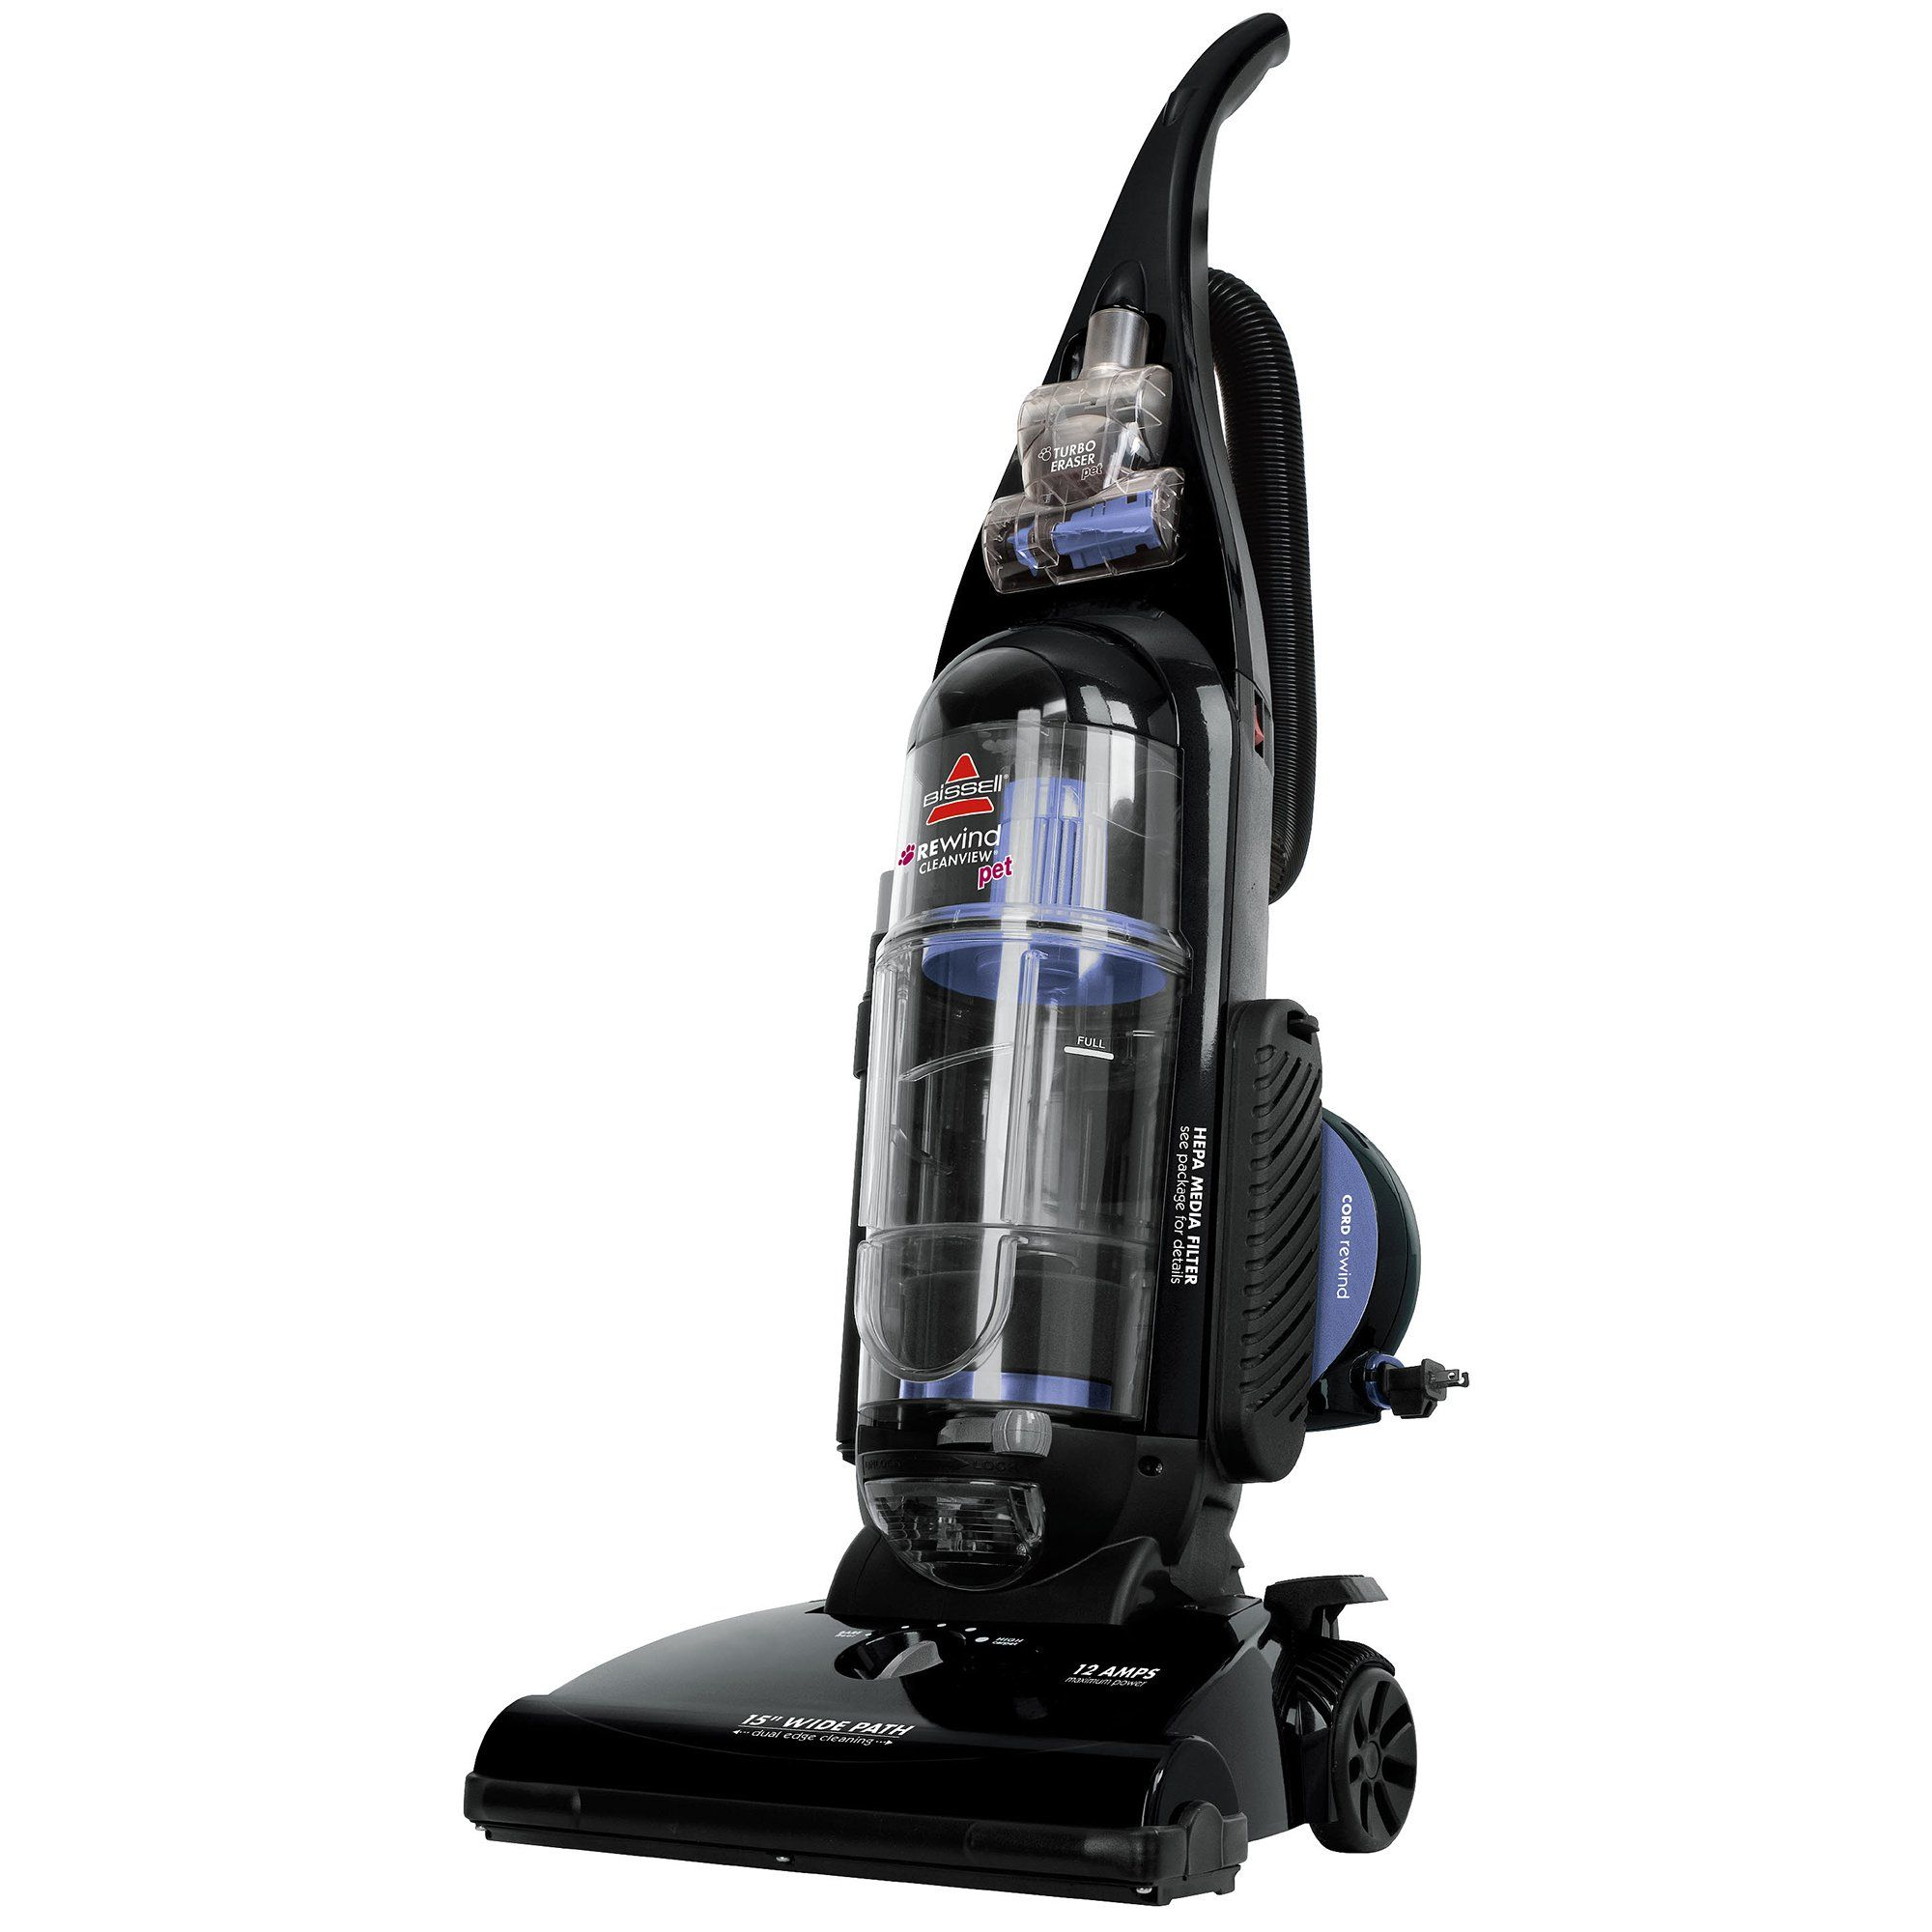 Bissell 58f8r Smartclean Upright Vacuum Certified Refurbished Find Out More About The Great Product A Bagless Vacuum Upright Vacuums Bissell Vacuum Cleaner